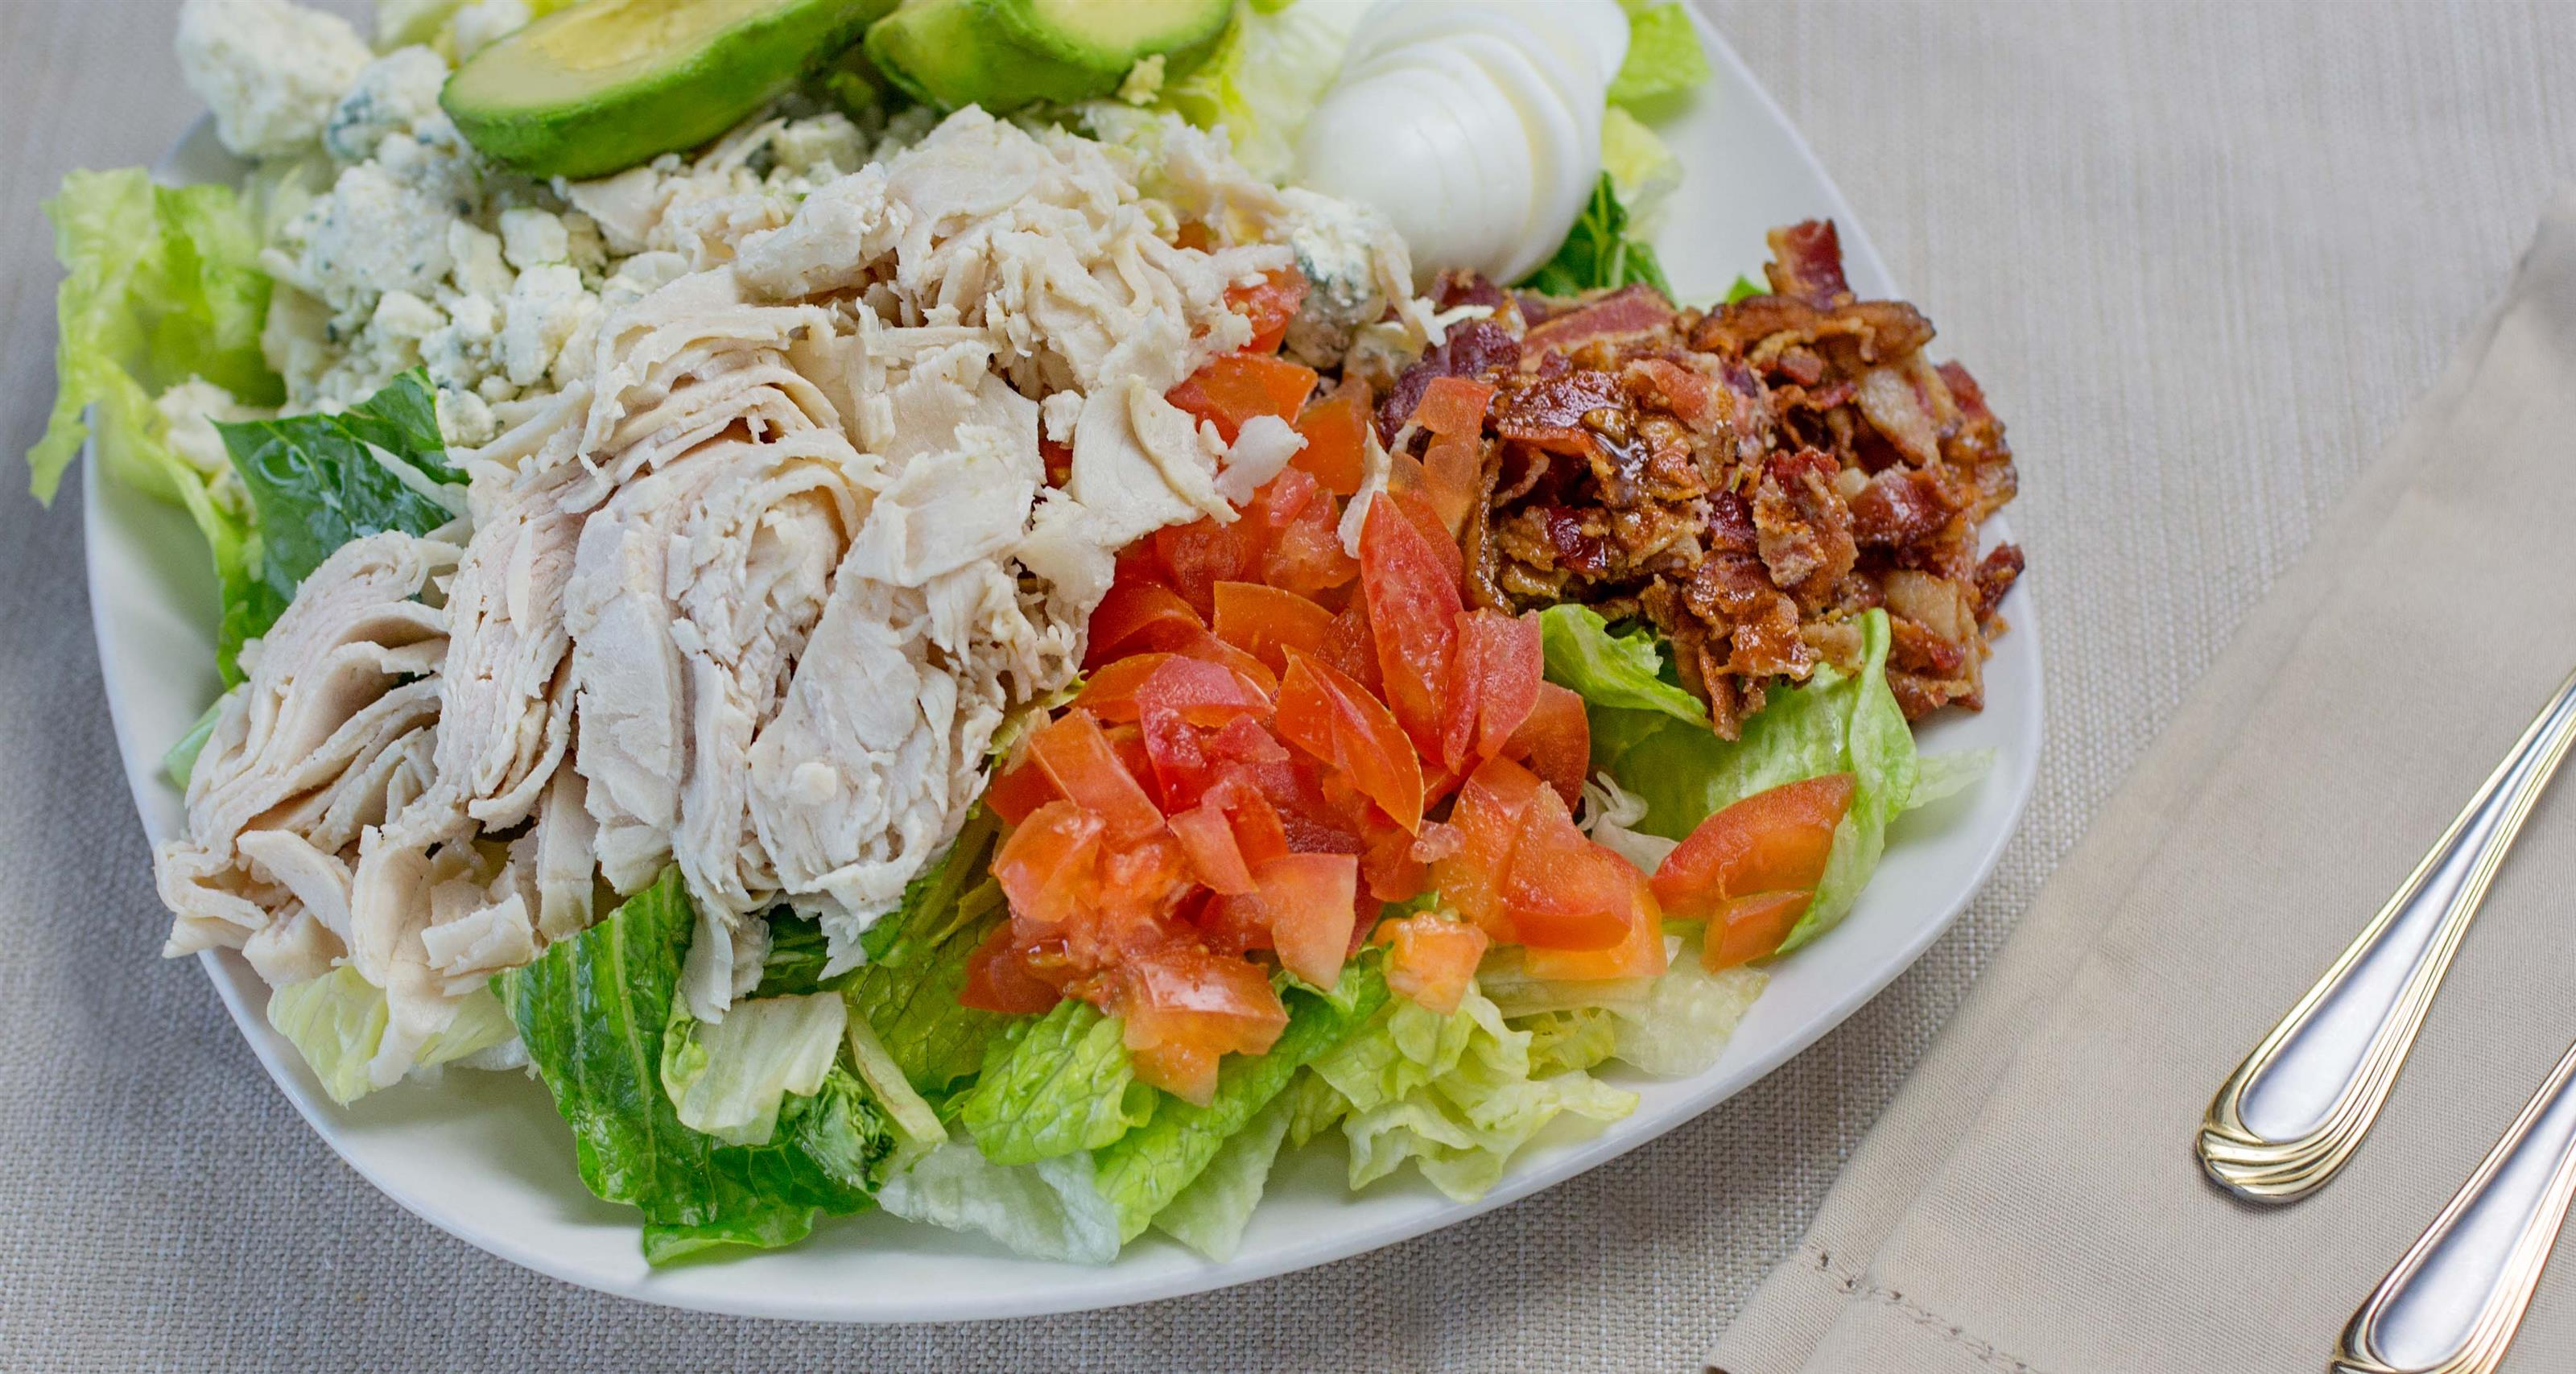 turkey on a plate with bacon bits, lettuce and diced tomatoes